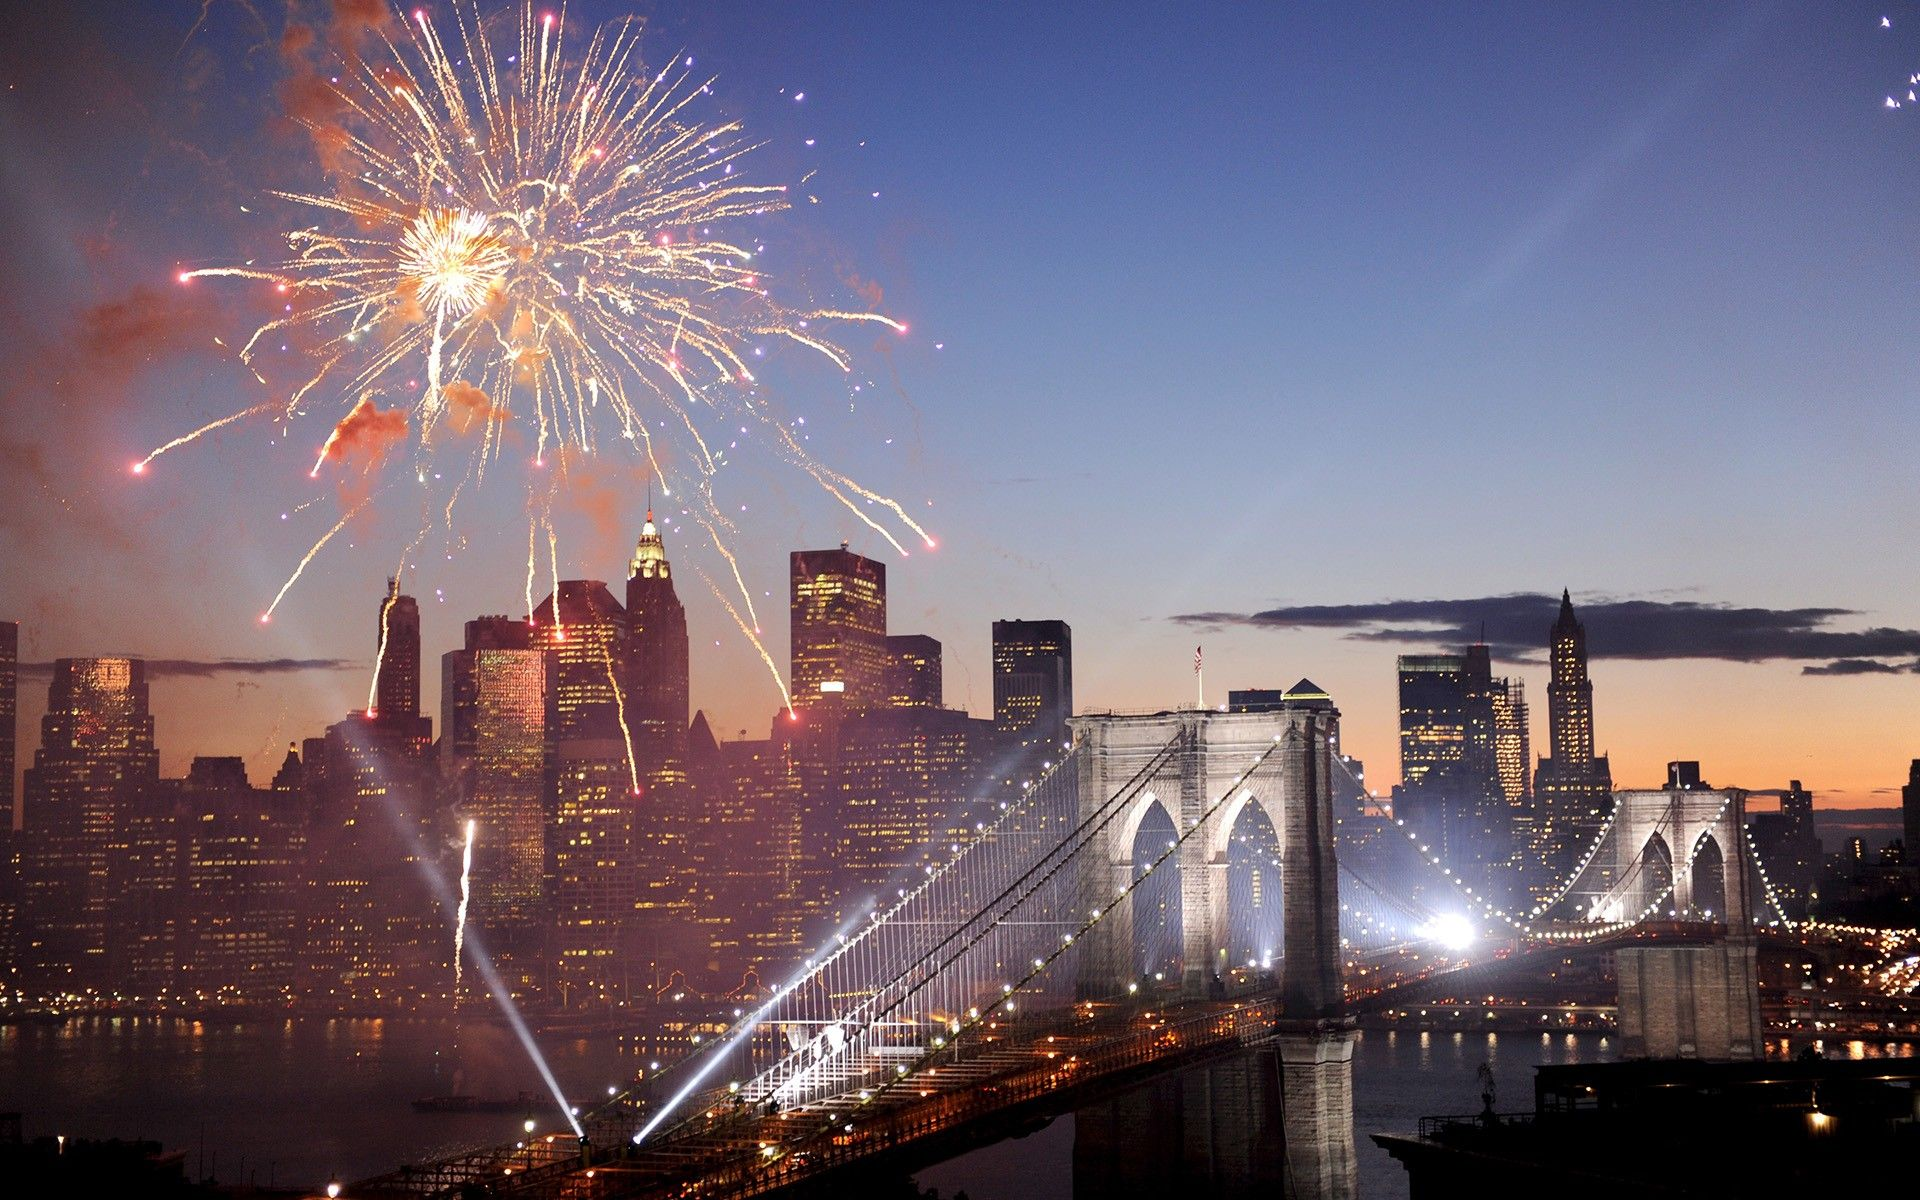 city brooklyn bridge new york cities fireworks wallpapers widescreen backgrounds jpg 1920x1200 wallpaper nyc seattle resolution